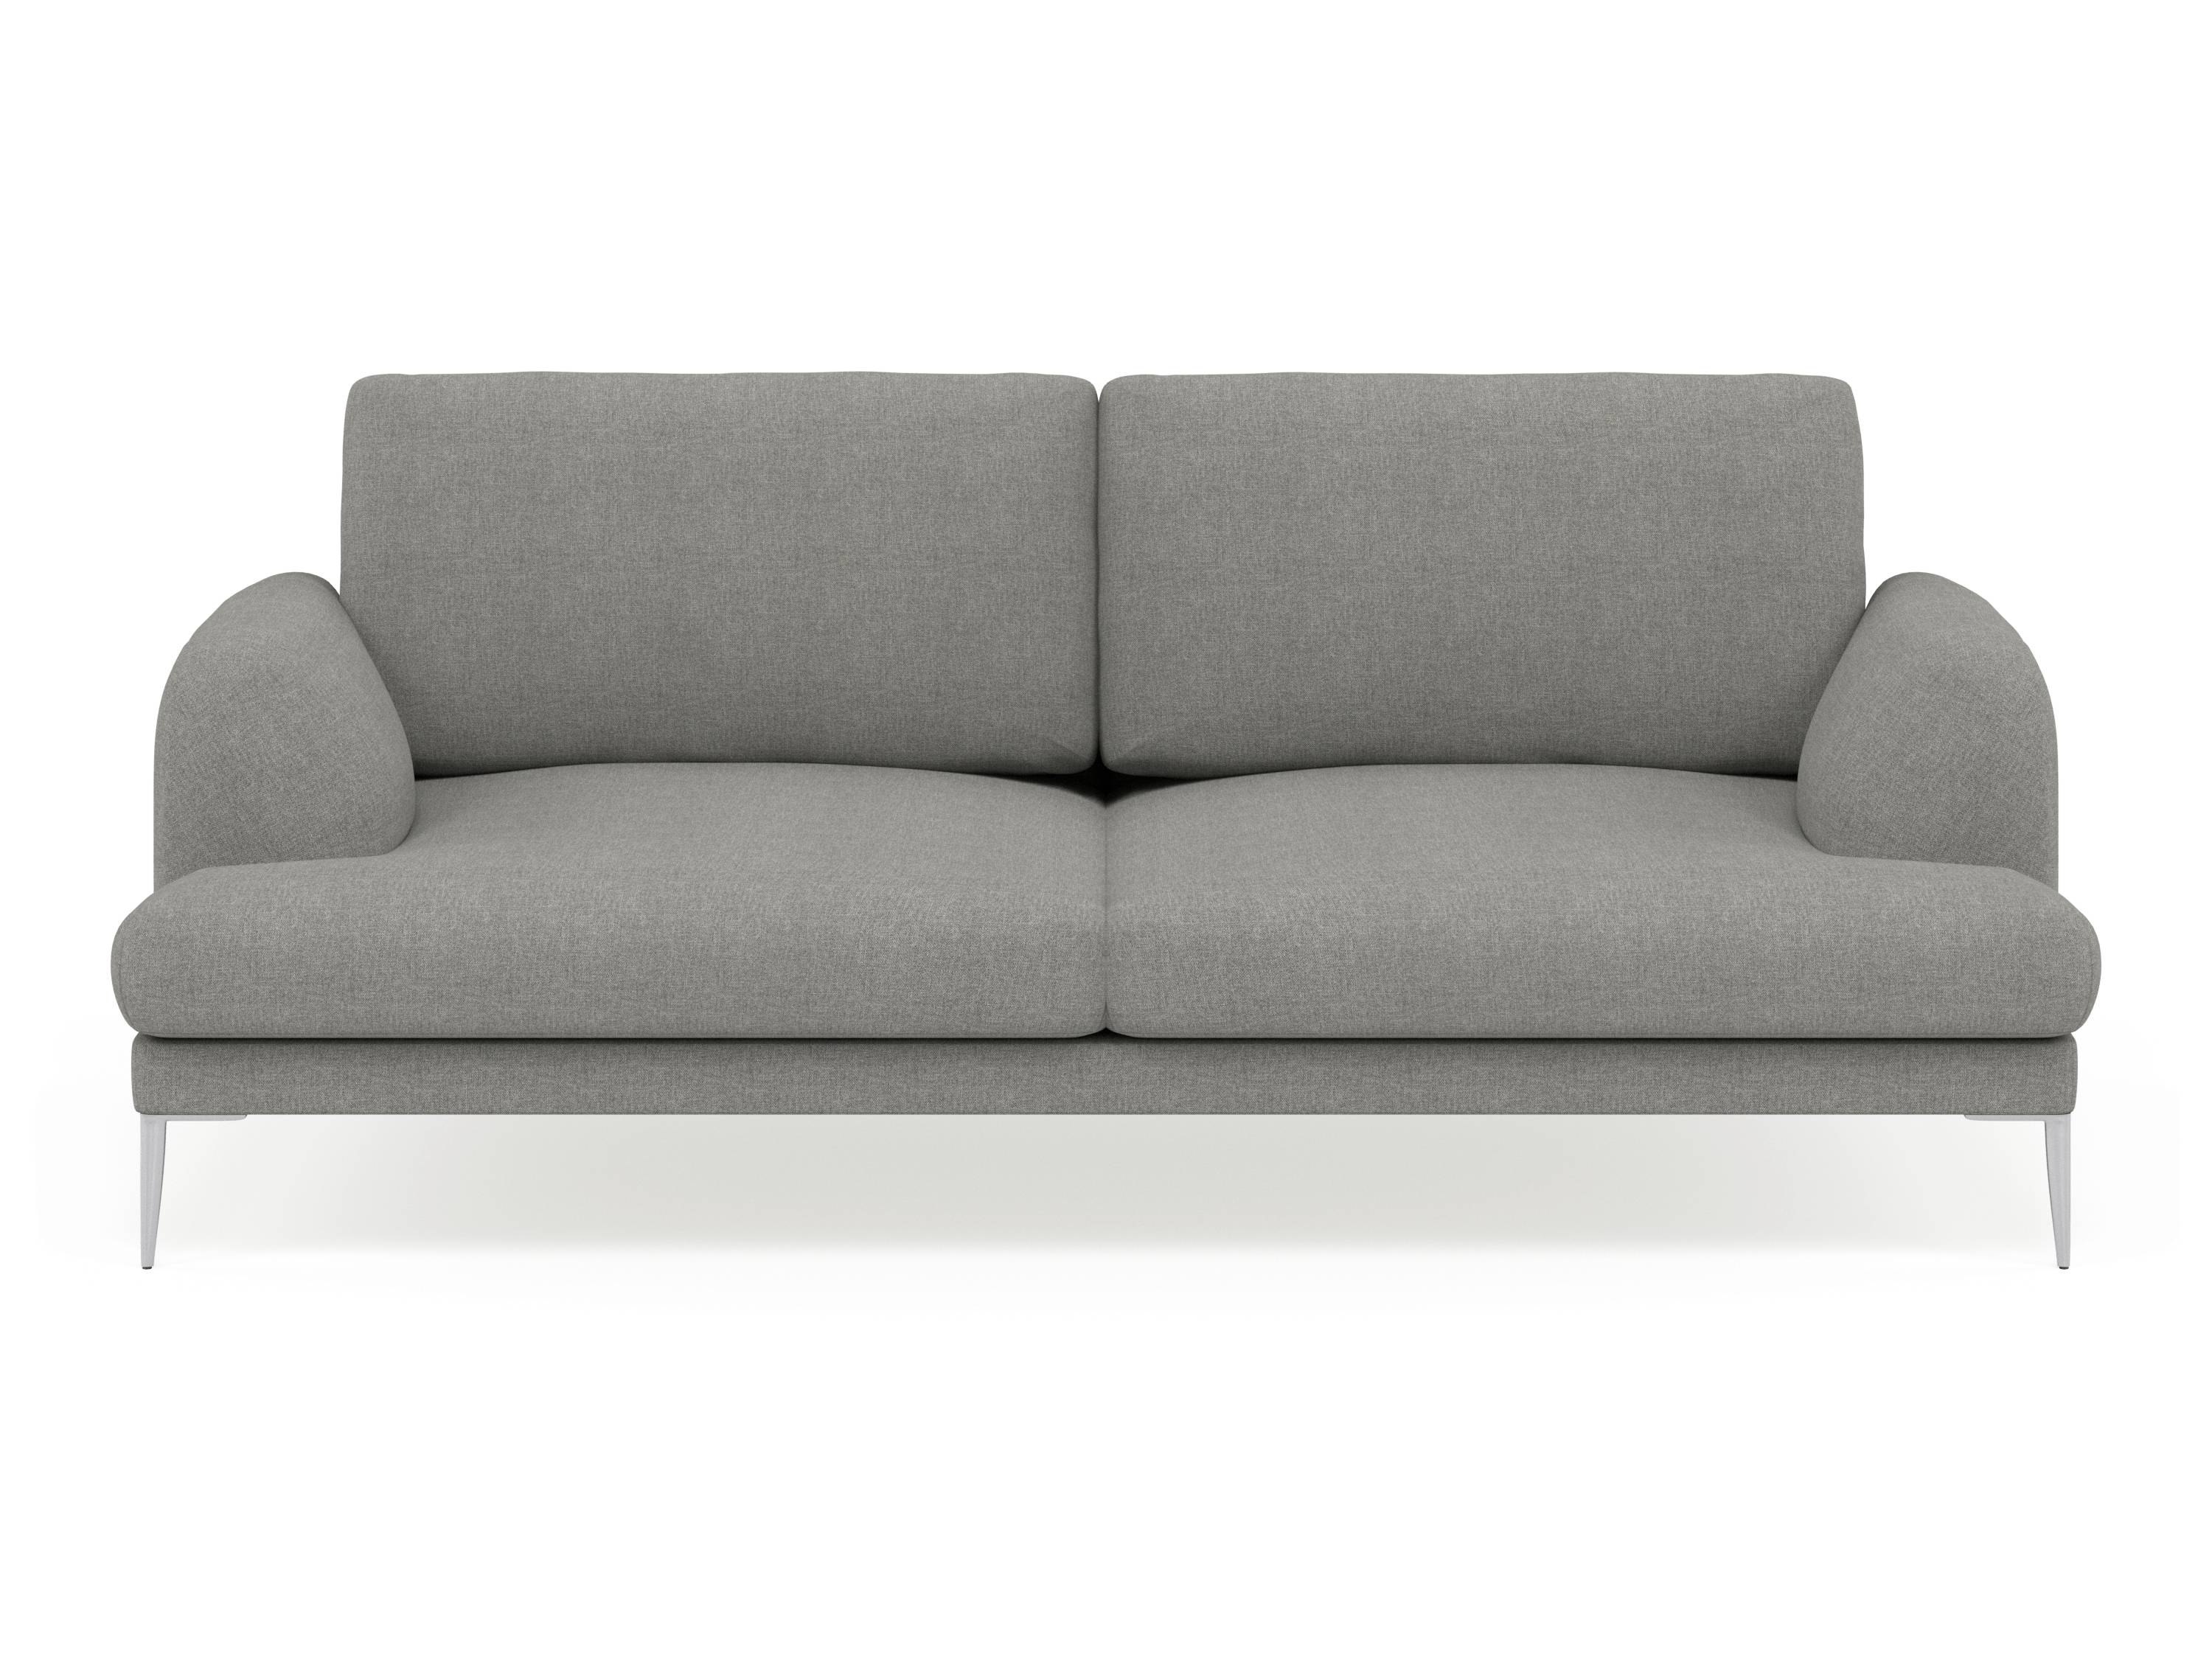 Compact 2 Seater Sofa - Leather Sectional Sofa intended for Small 2 Seater Sofas (Image 4 of 30)